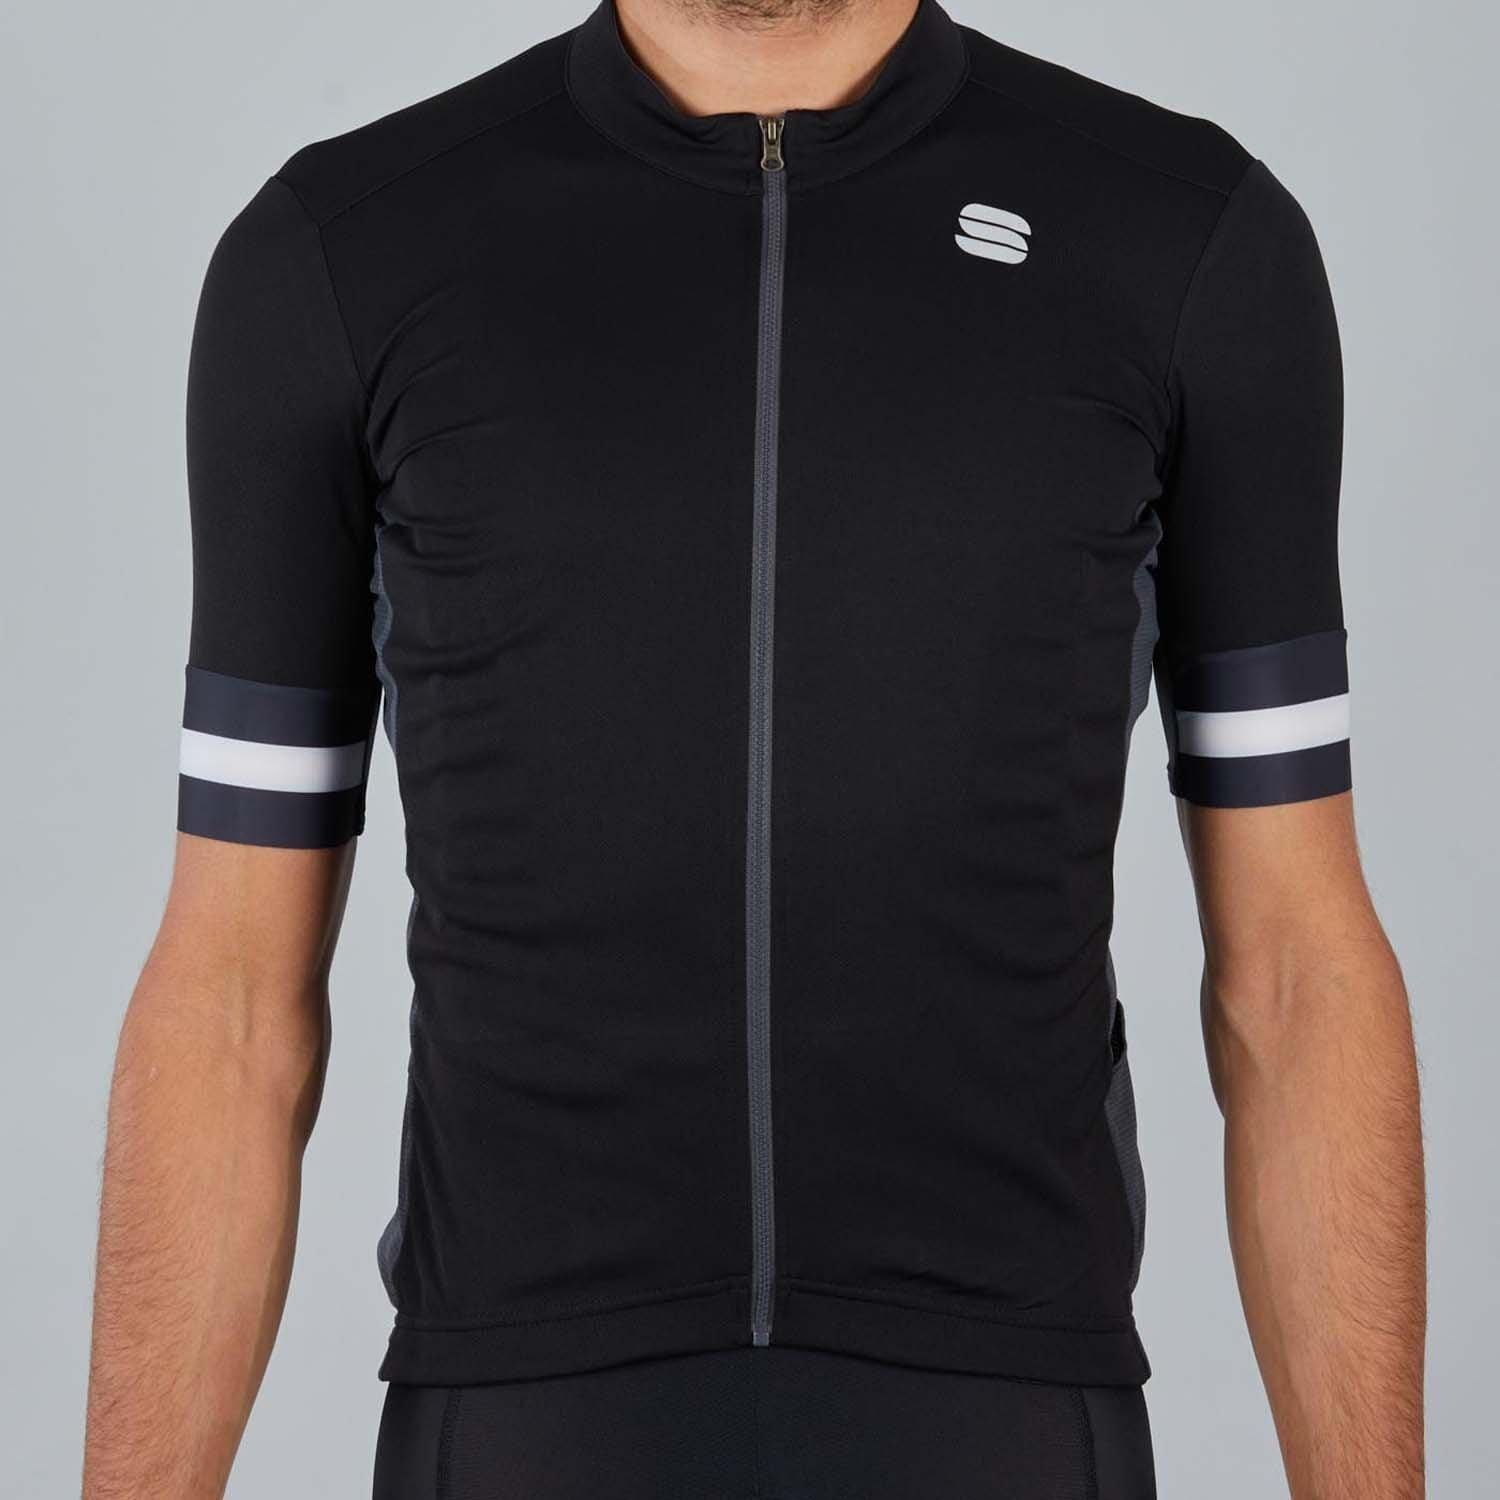 Sportful-Sportful Kite Jersey-Black-XS-SF200150021-saddleback-elite-performance-cycling